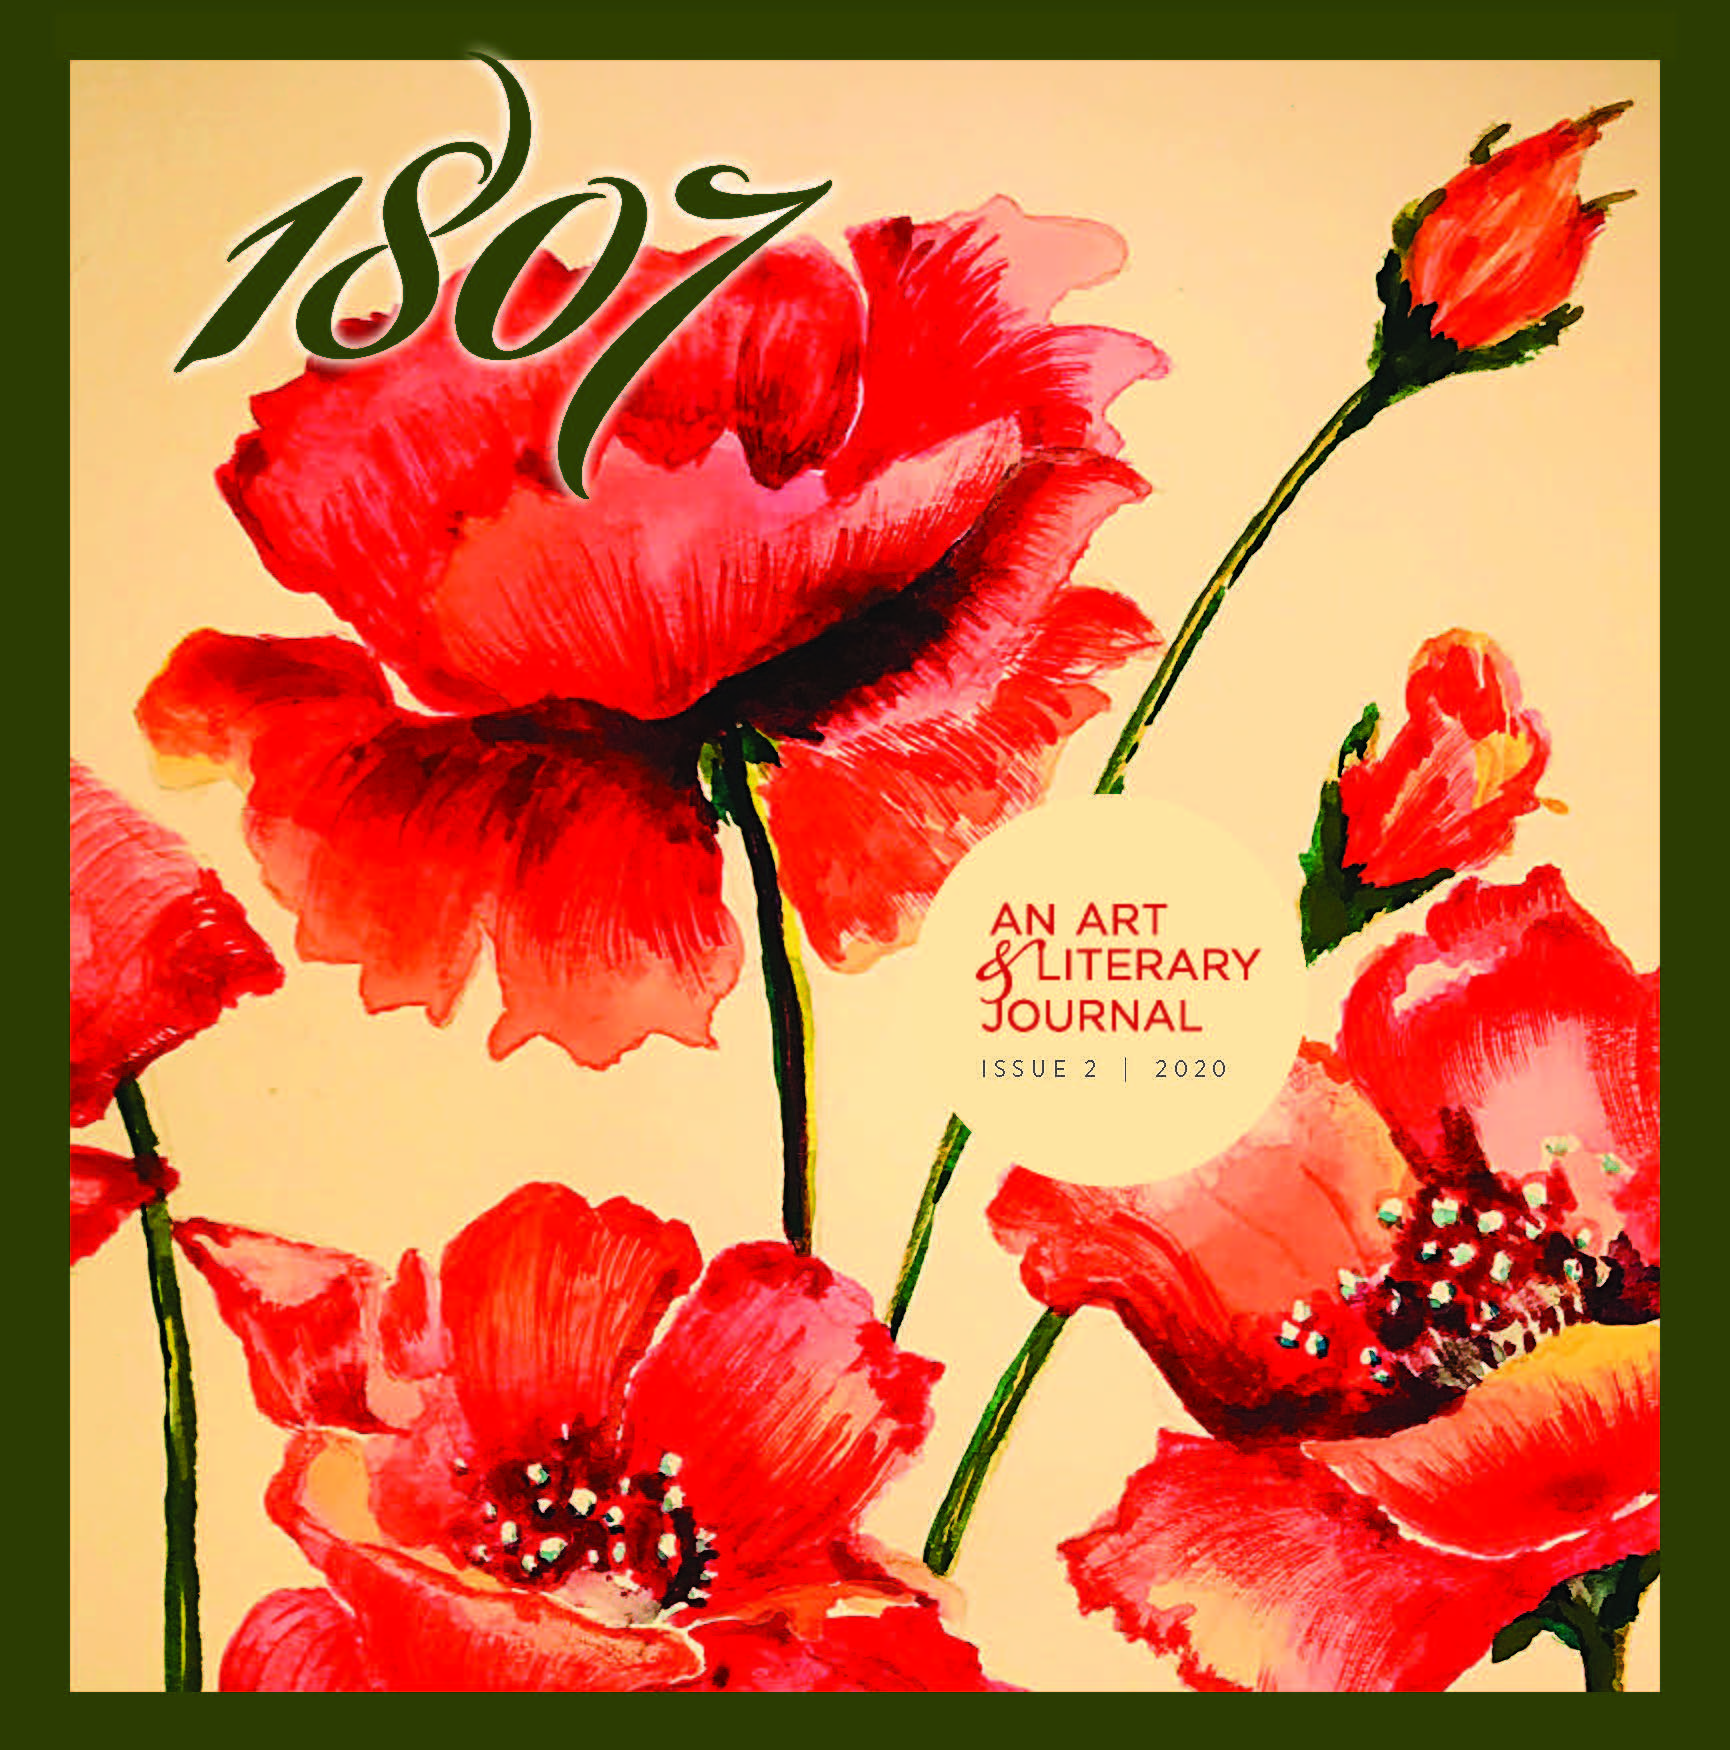 Cover of 1807 magazine with art of tulips